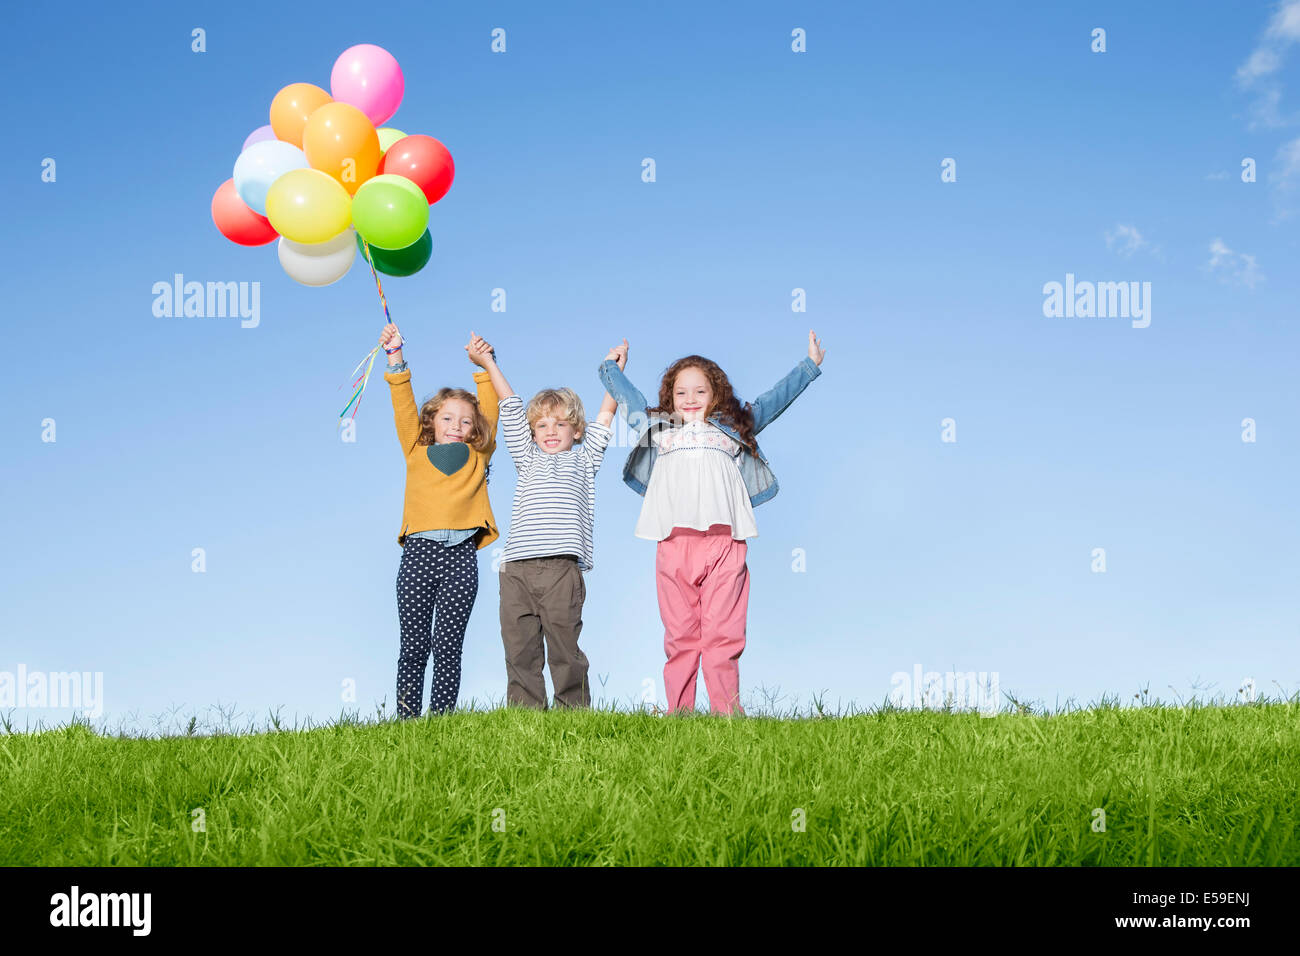 Les enfants avec des ballons cheering on grassy hill Photo Stock